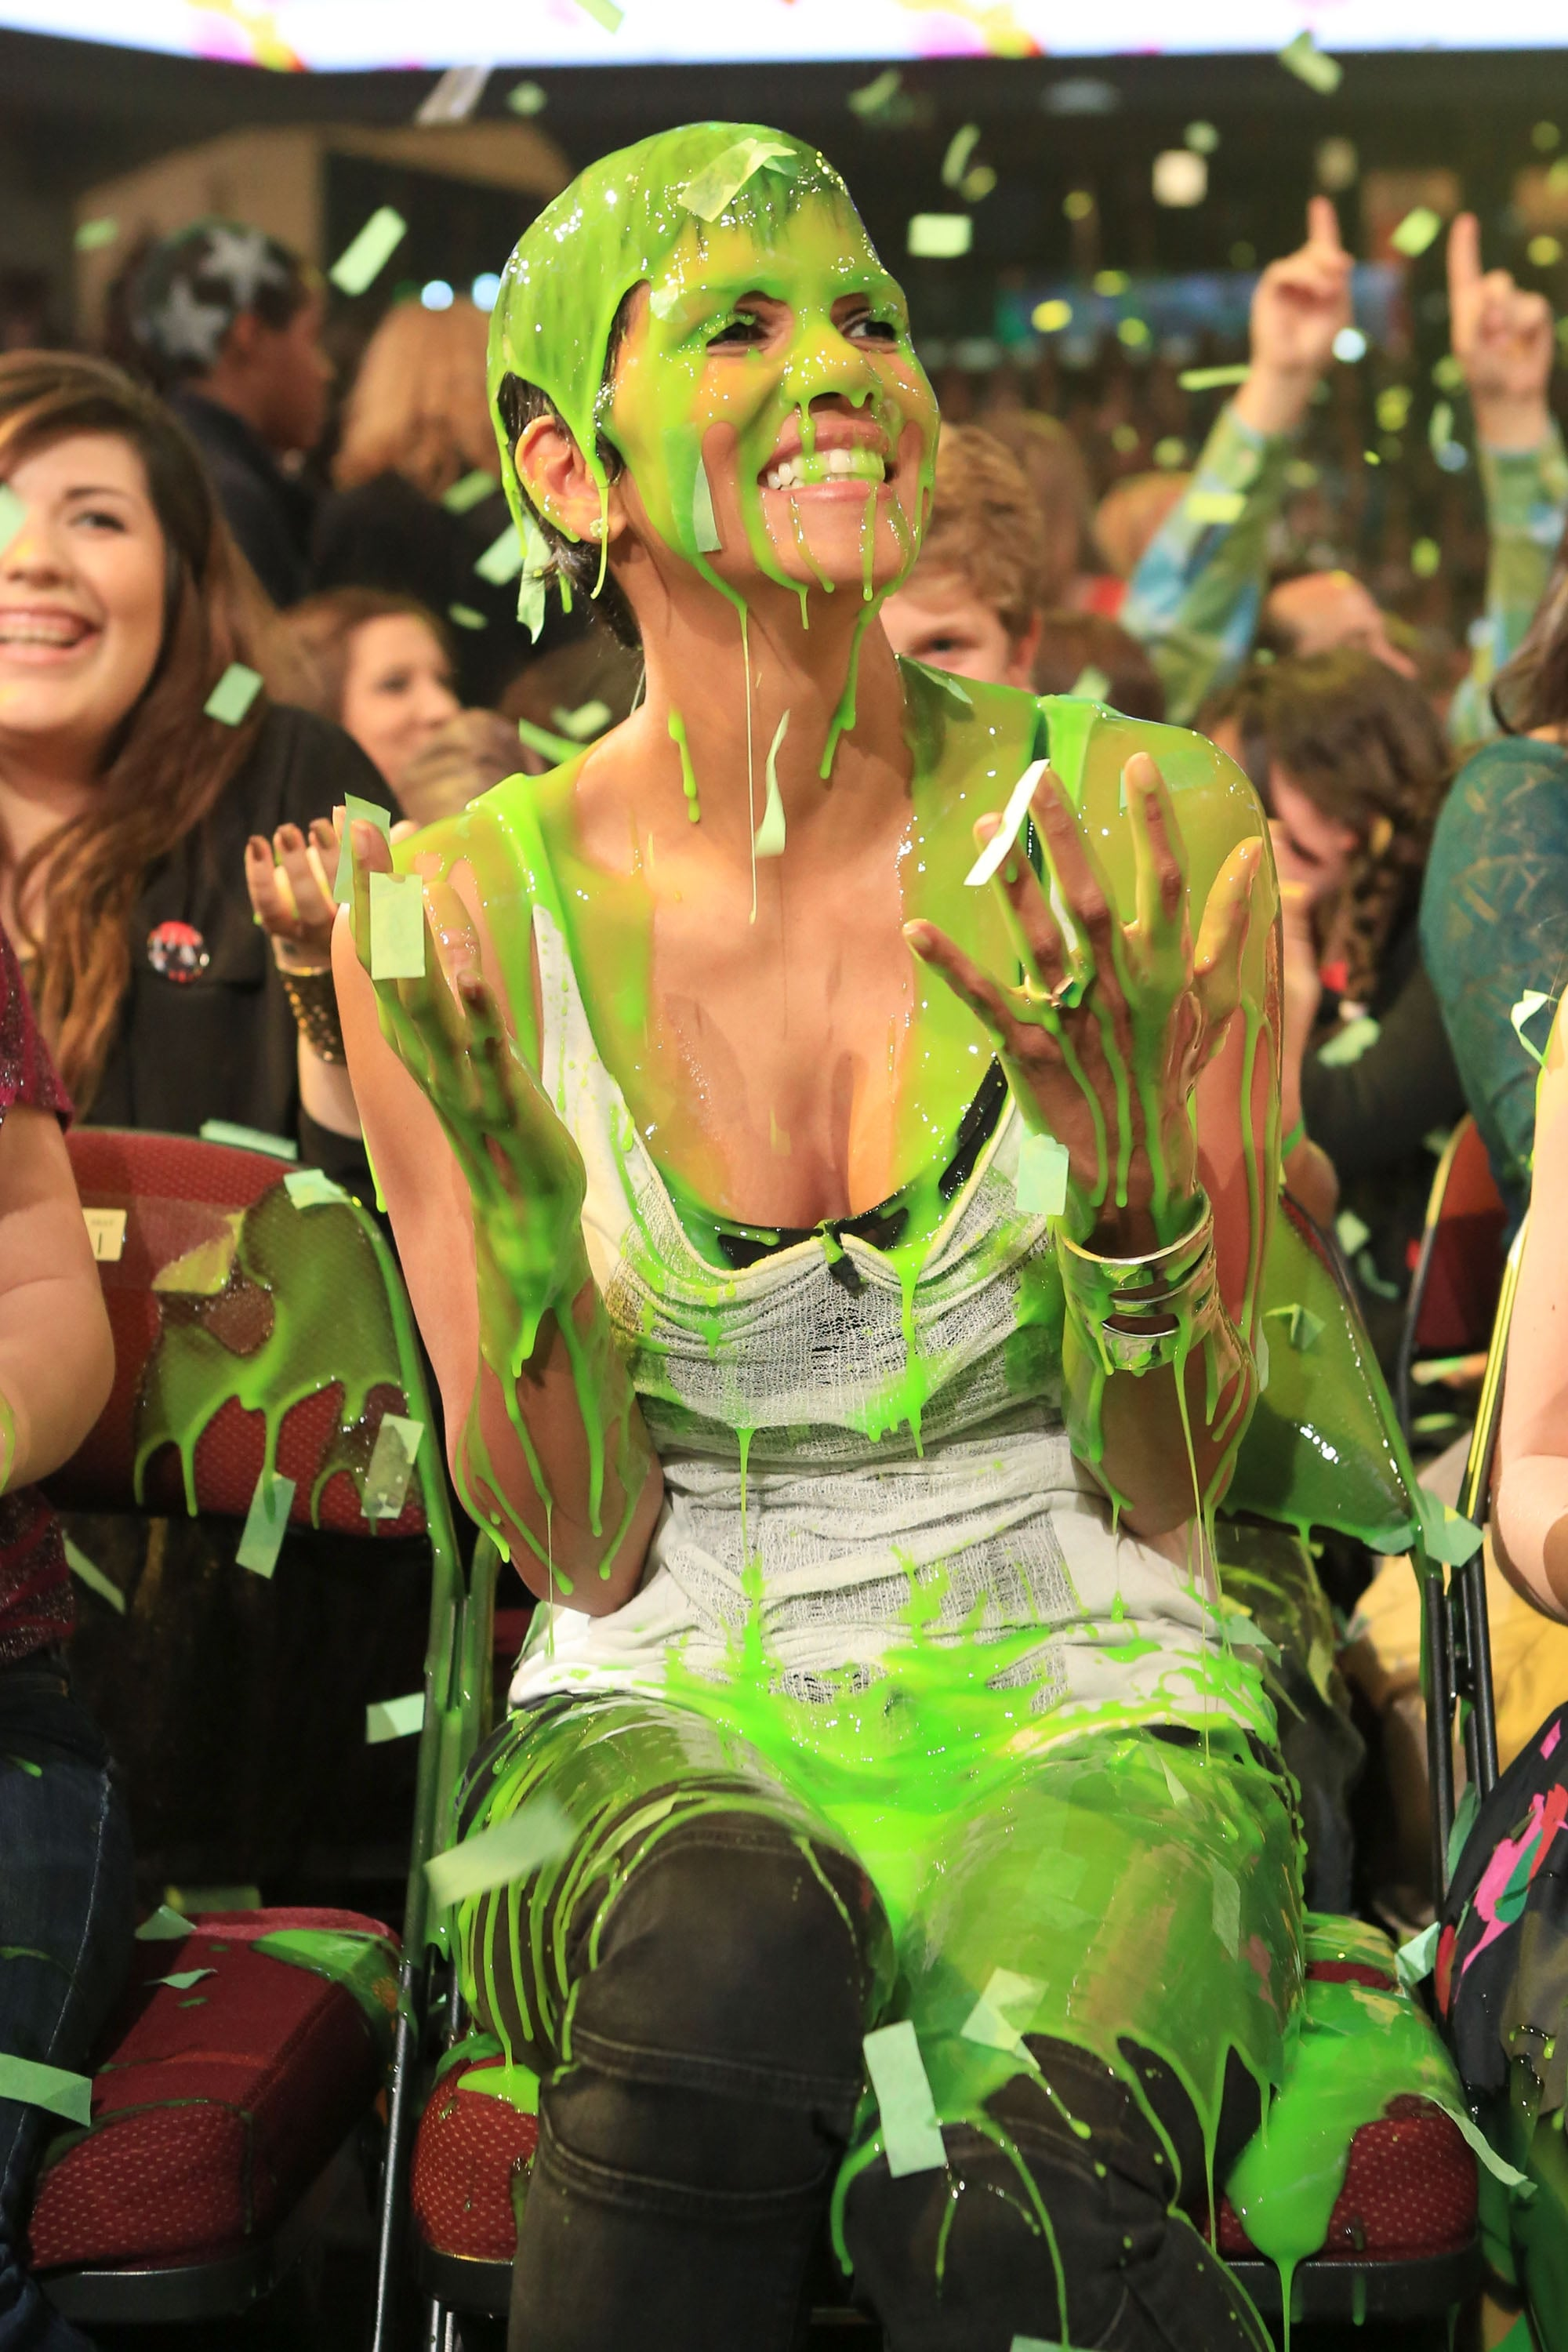 Halle Berry was taken by surprise when she got slimed in the audience in 2012.